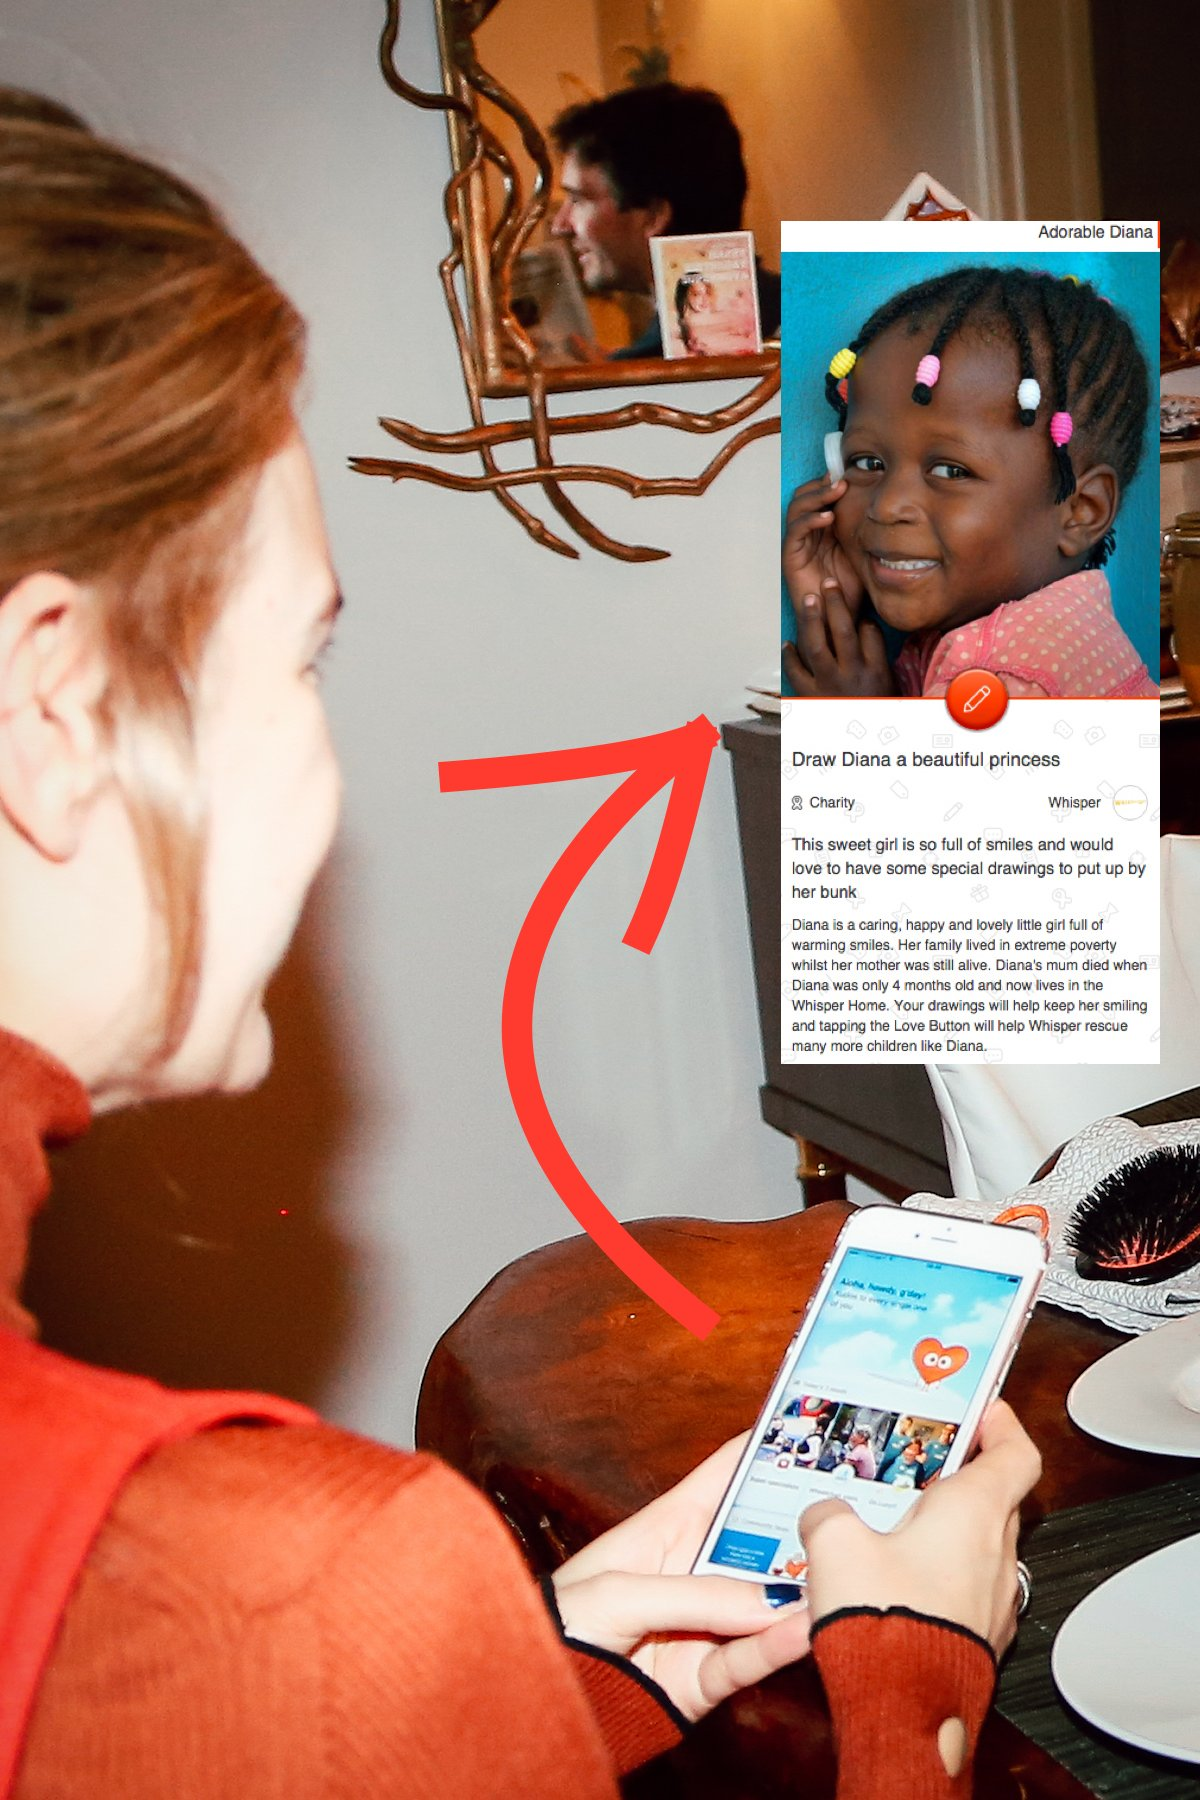 with-the-children-off-to-school-natalia-spends-some-time-on-elbi-todays-featured-project-is-to-draw-princess-pictures-for-diana-a-3-year-old-orphan-in-uganda-who-is-